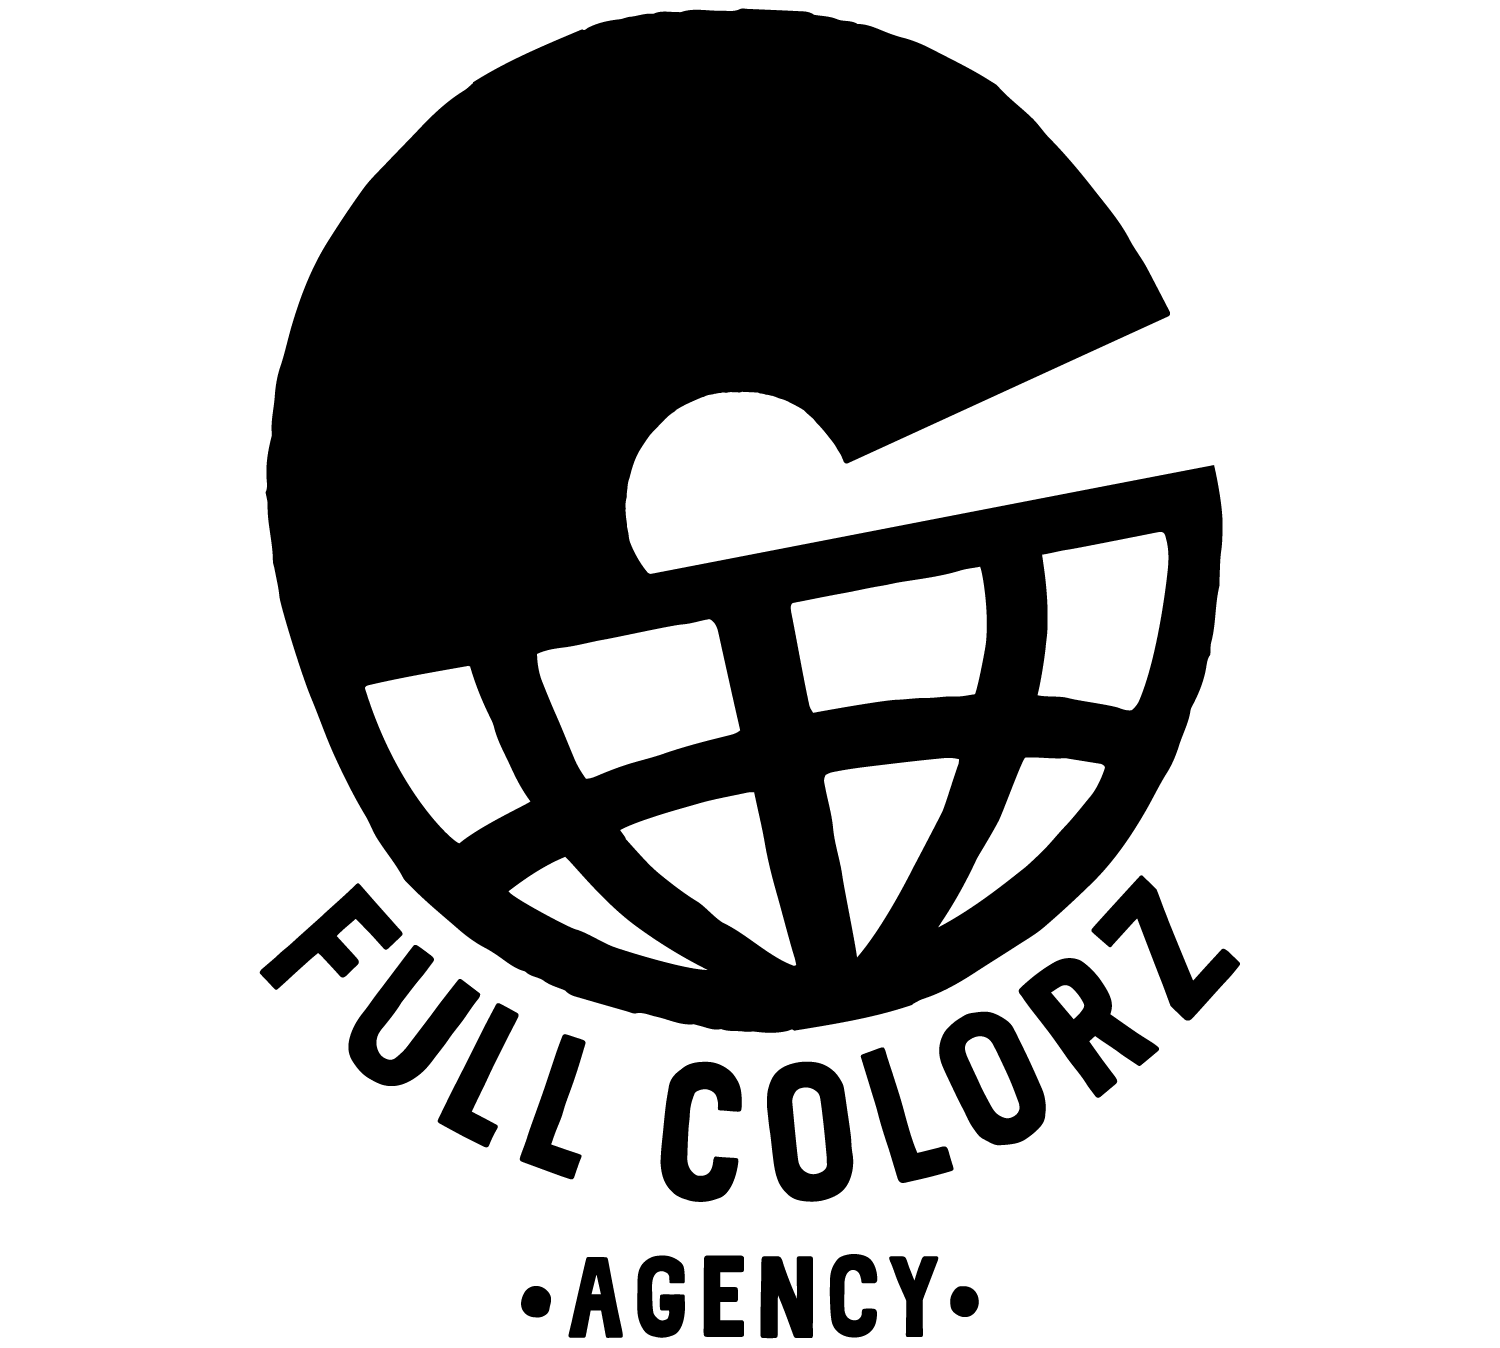 Full Colorz Agency